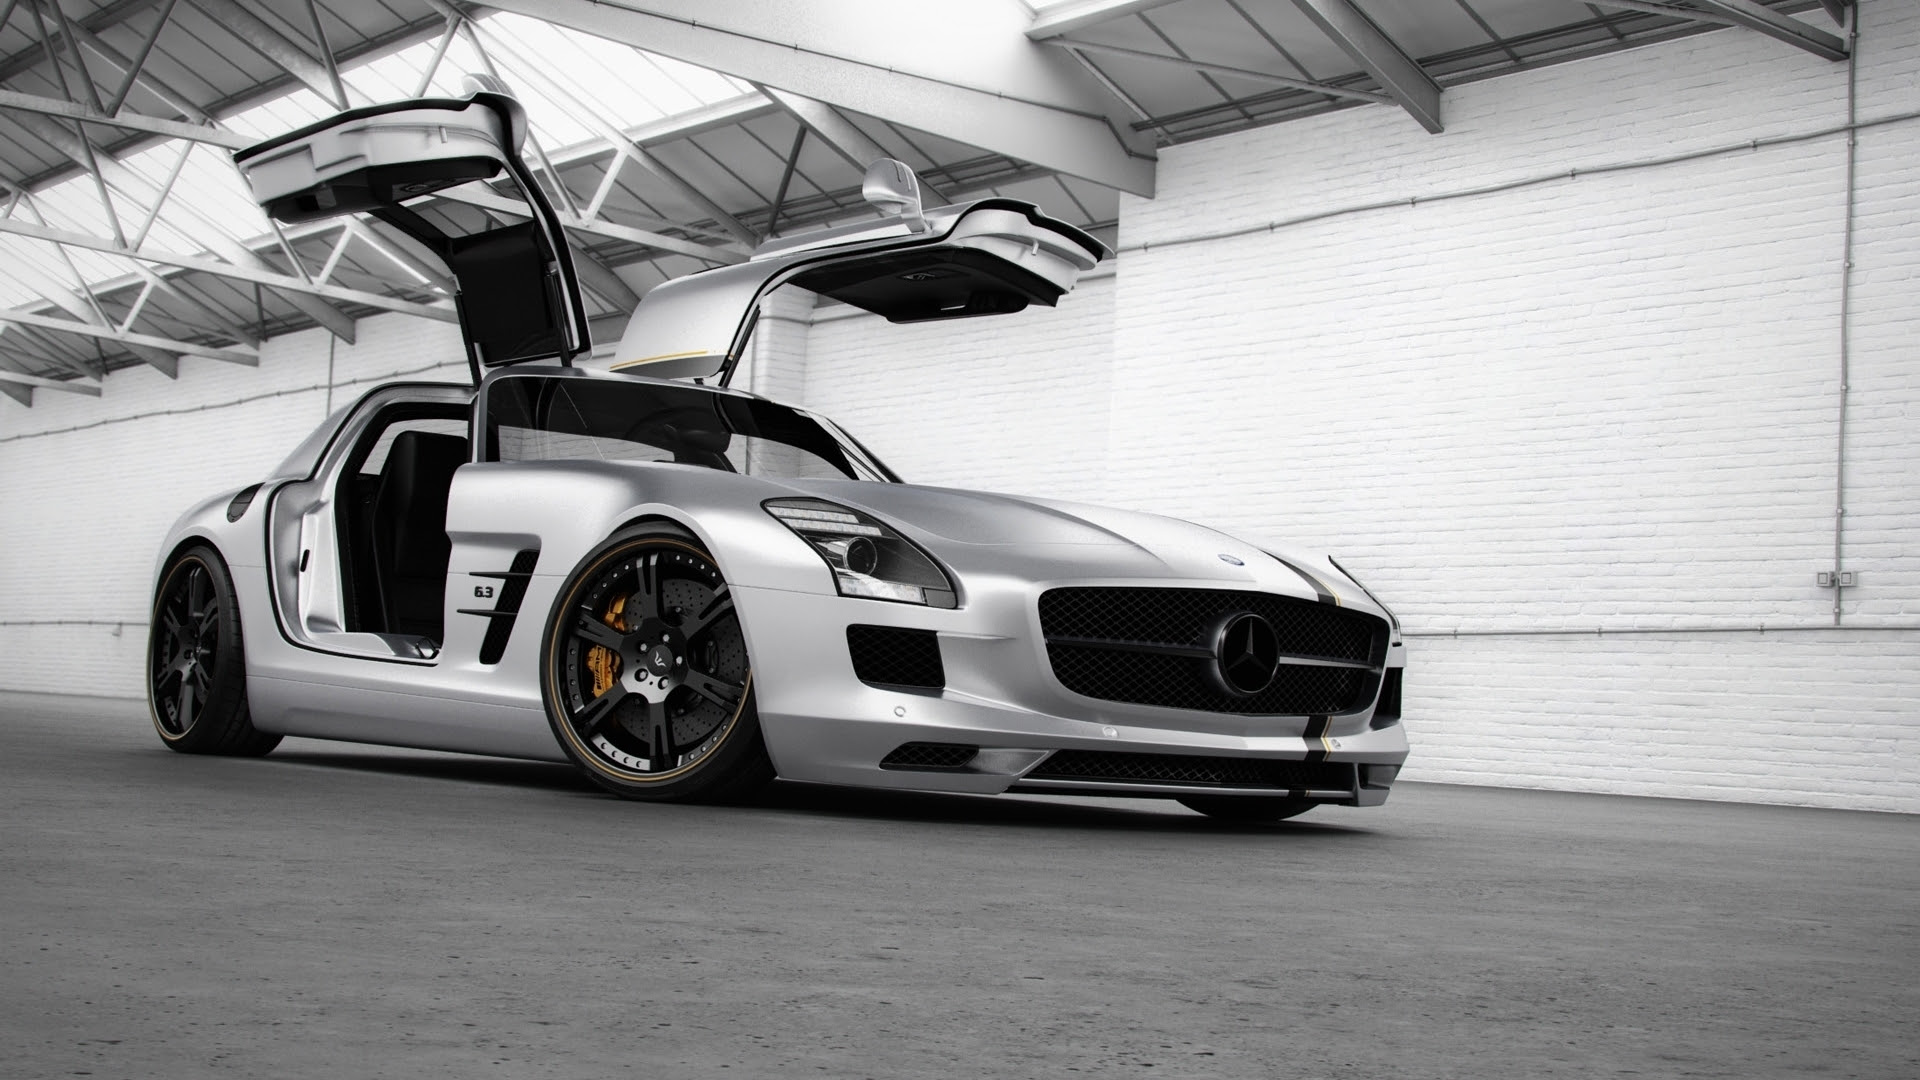 50 Hd Backgrounds And Wallpapers Of Mercedes Benz For Download Images, Photos, Reviews